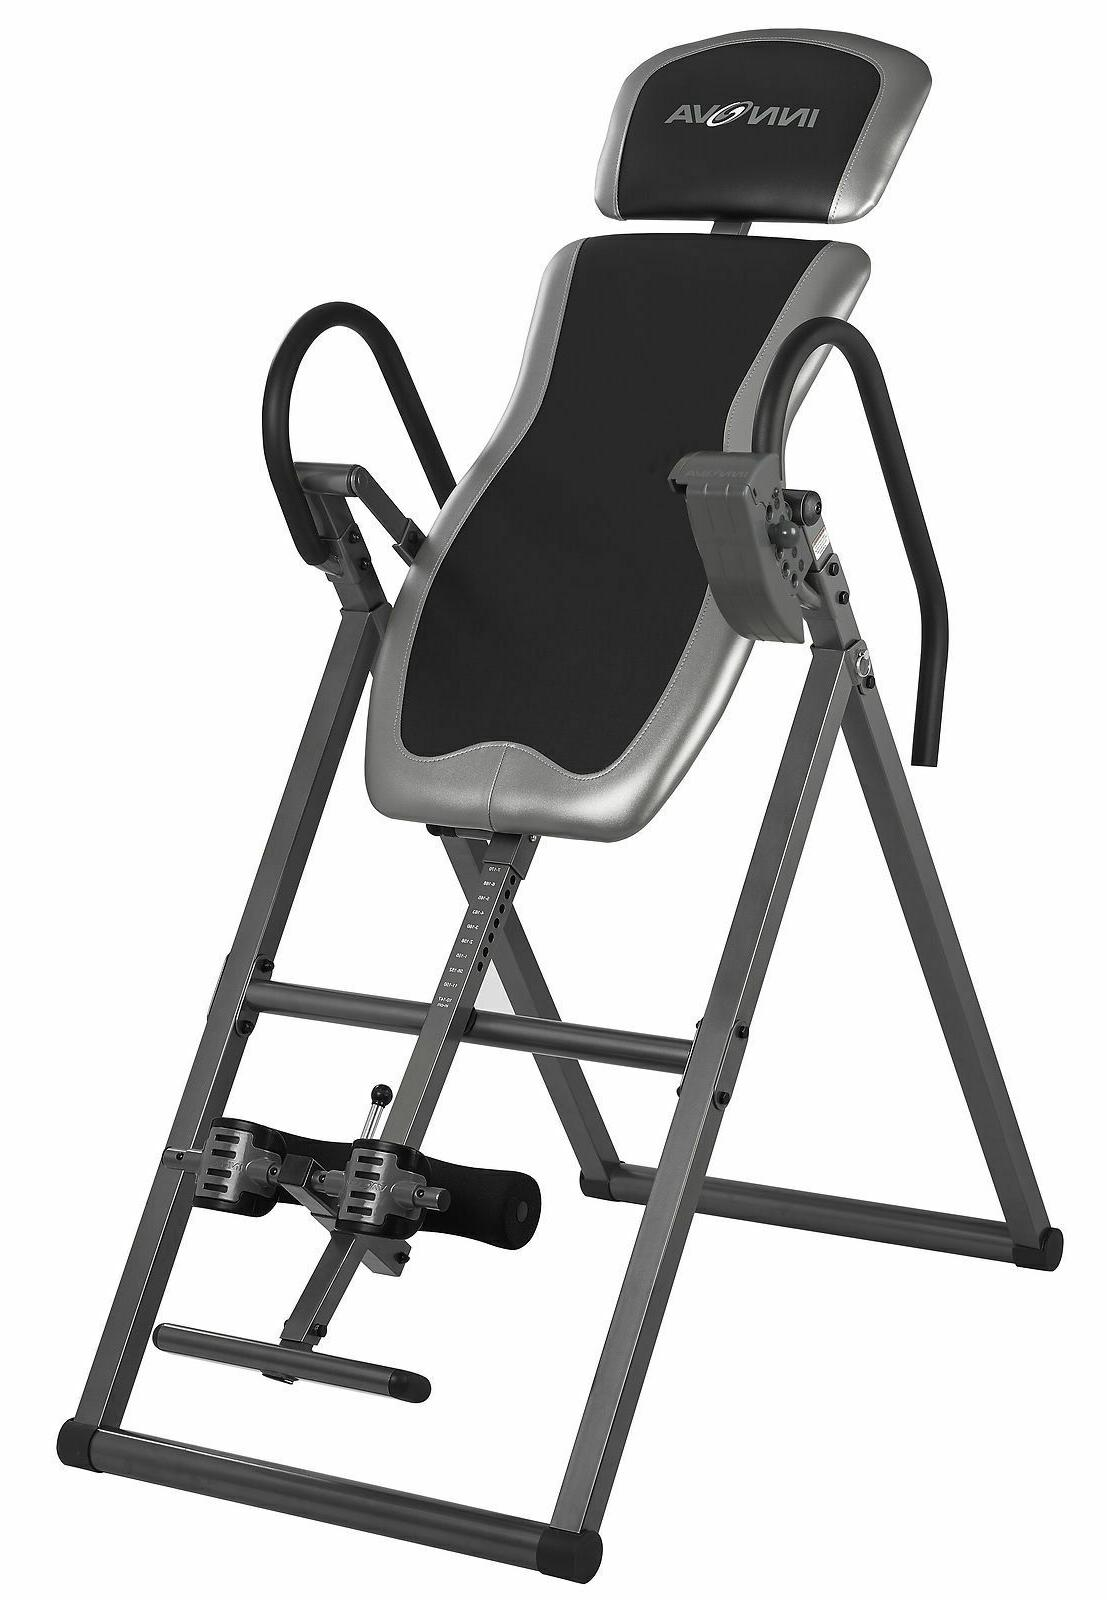 Innova Inversion Table Box Price!